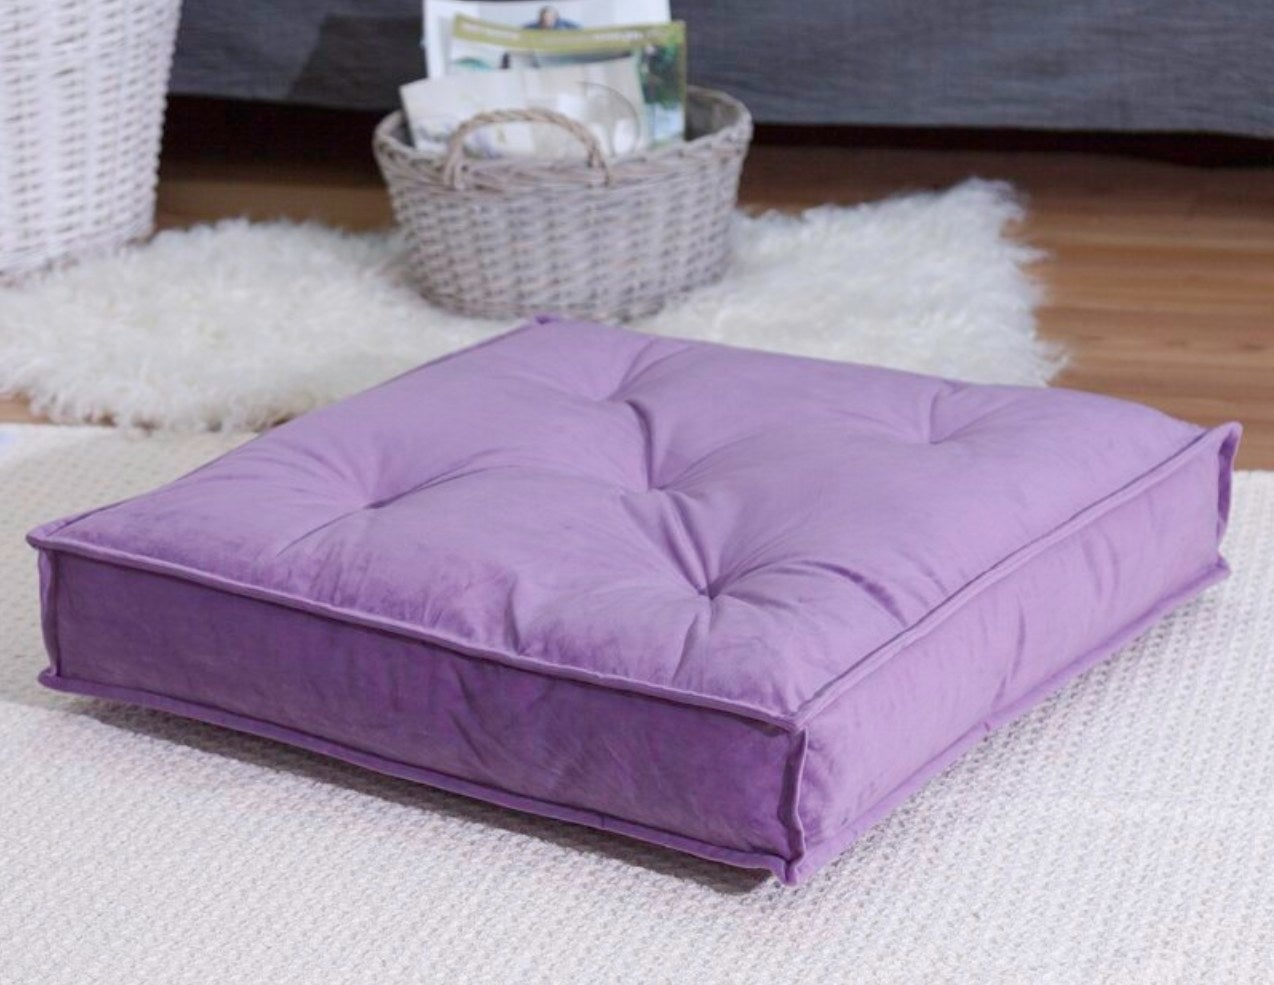 The purple floor pillow sitting atop an off-white rug